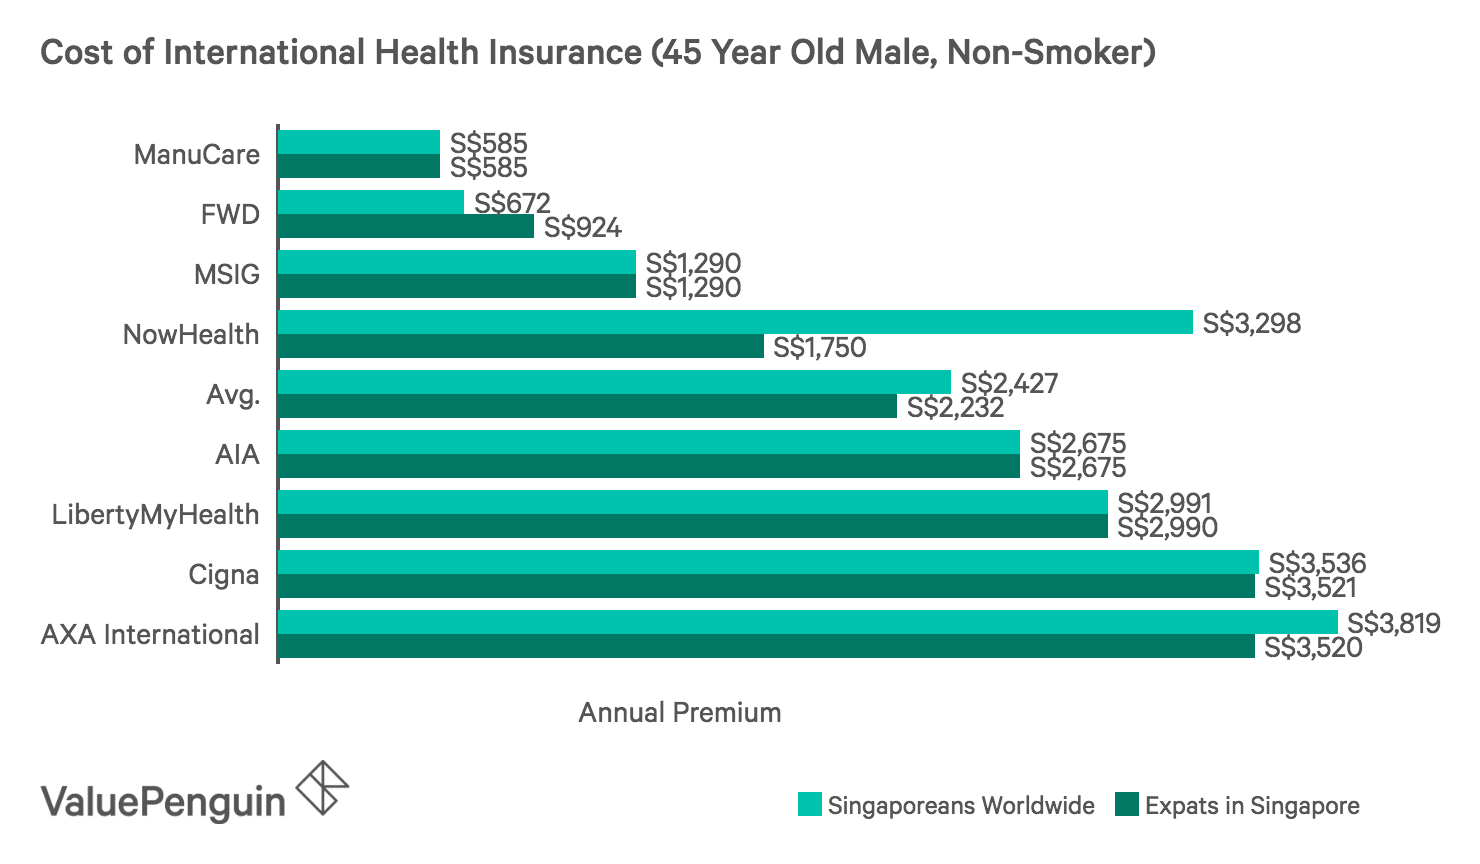 This graph shows the cheapest international health insurance plans for expats living in Singapore and Singaporeans who need international coverage